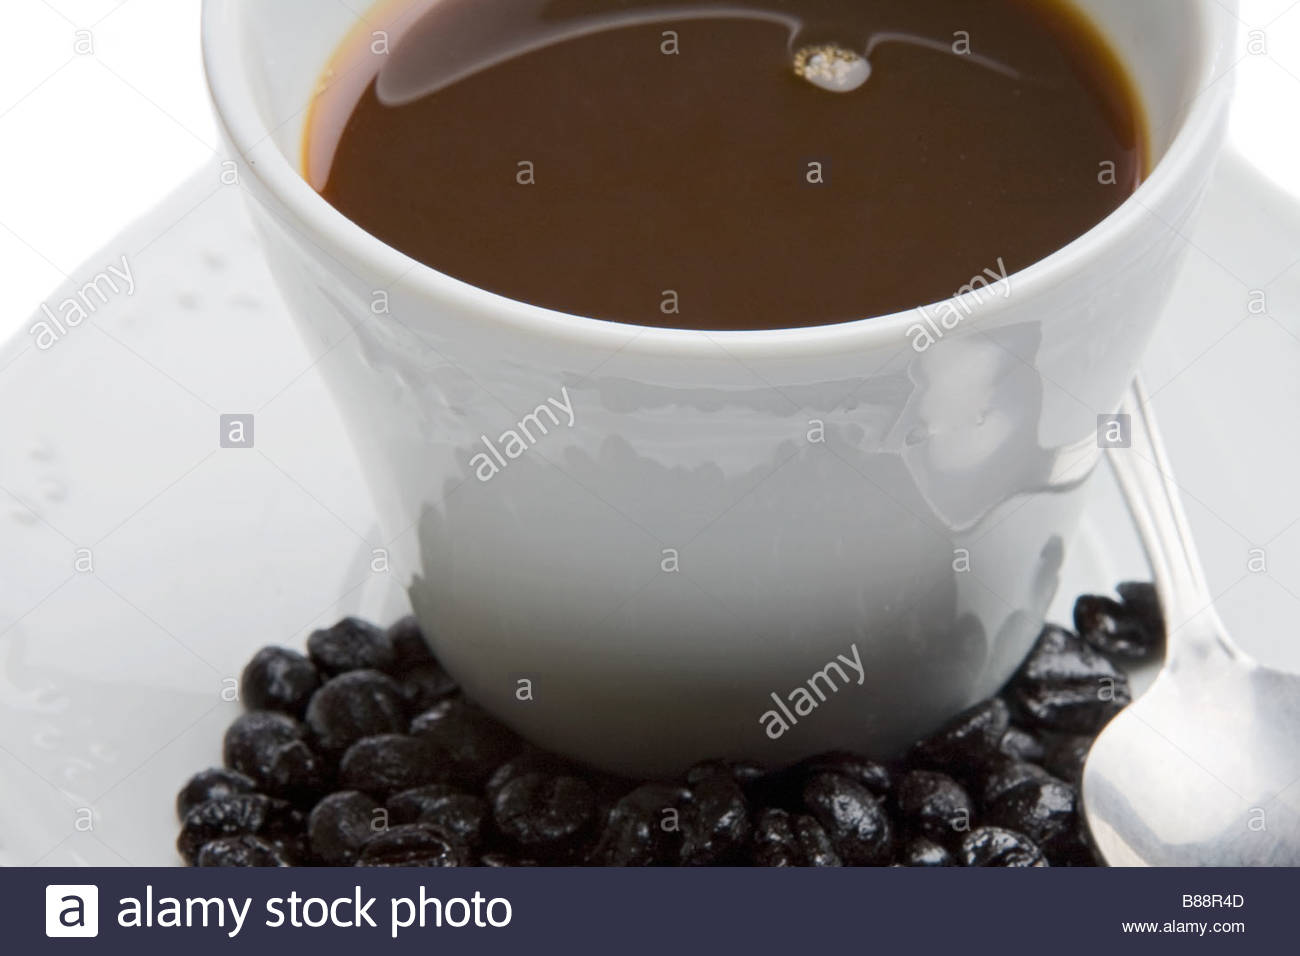 Cup of expresso coffee on a over white background Stock Photo 1300x956